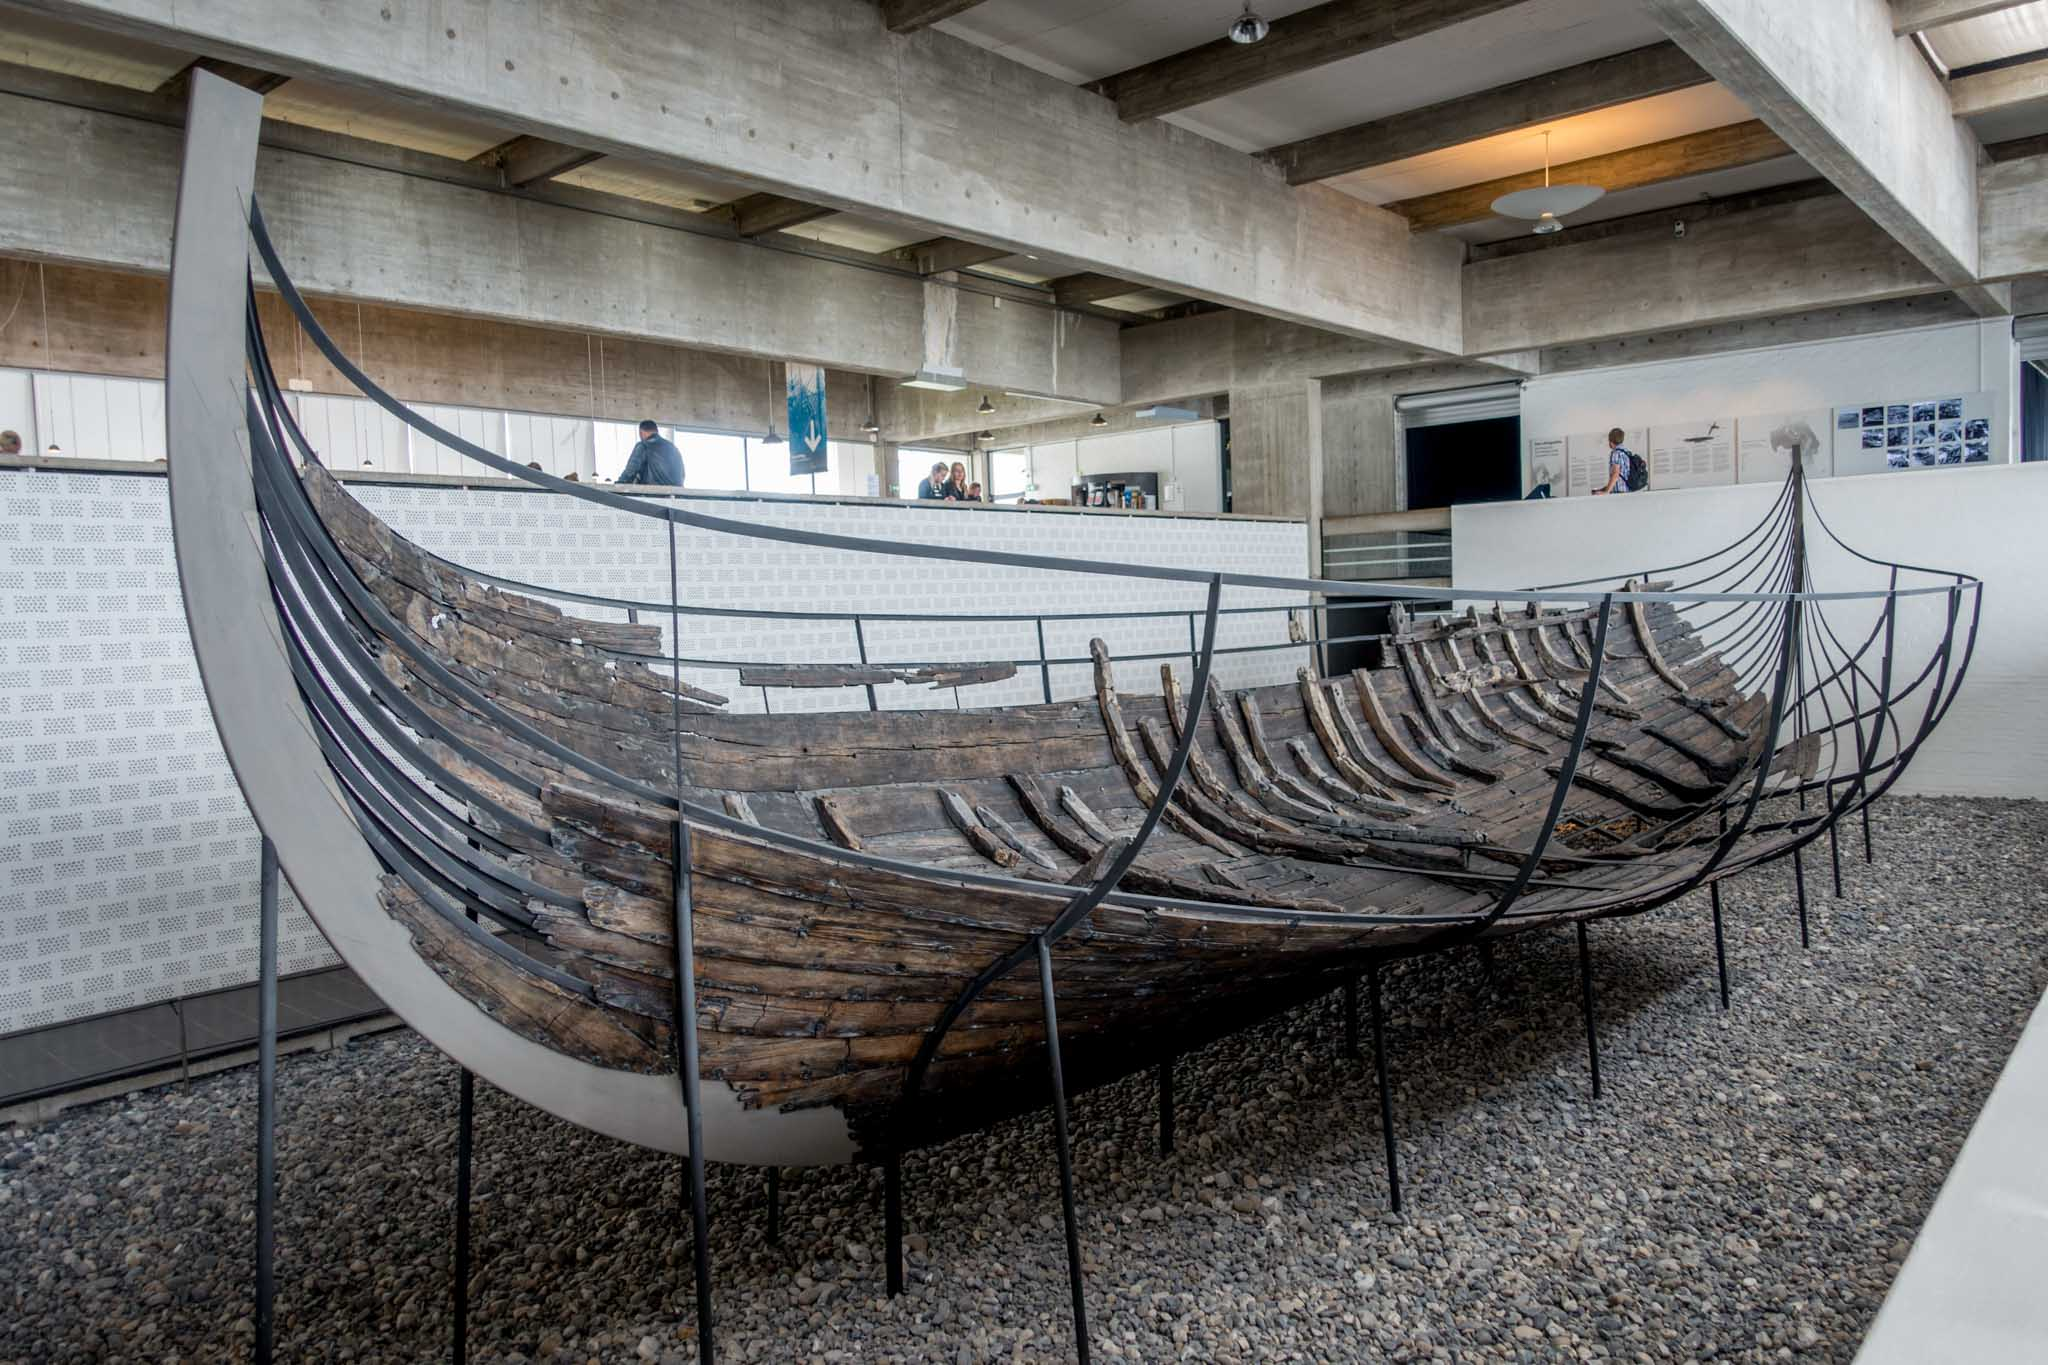 Ruins of 1000-year-old wooden ship on display in Denmark